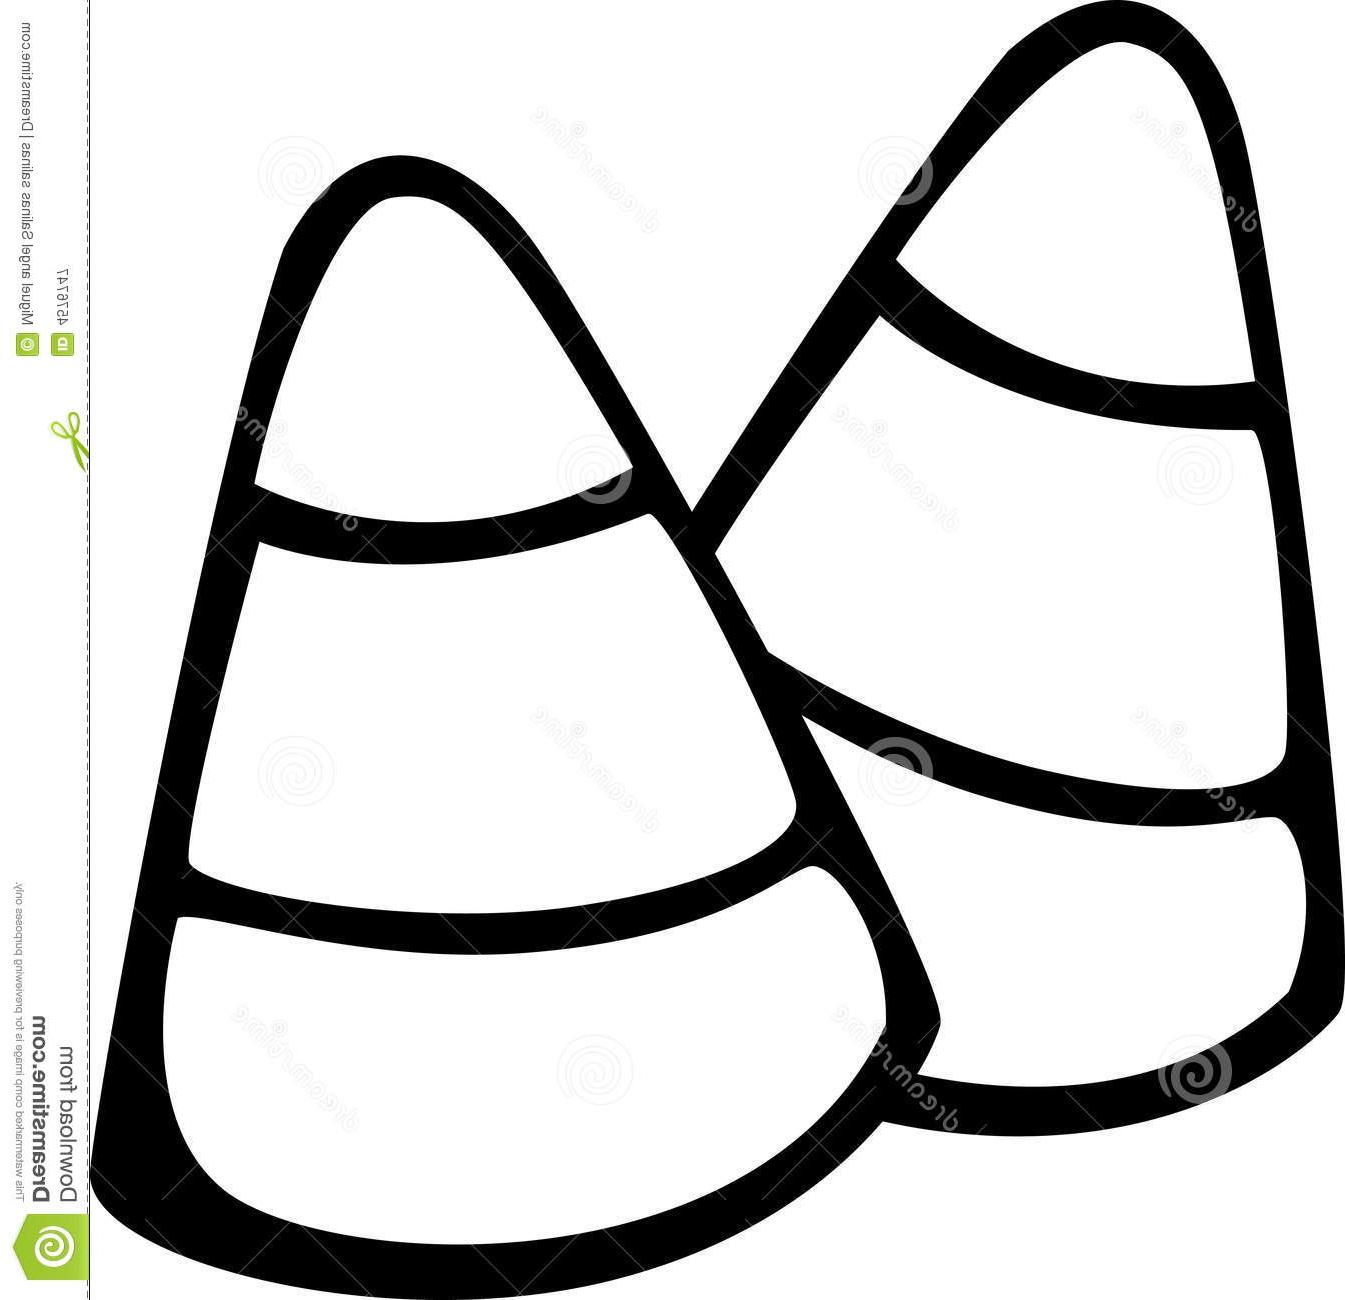 Candy Corn Clipart Black And White